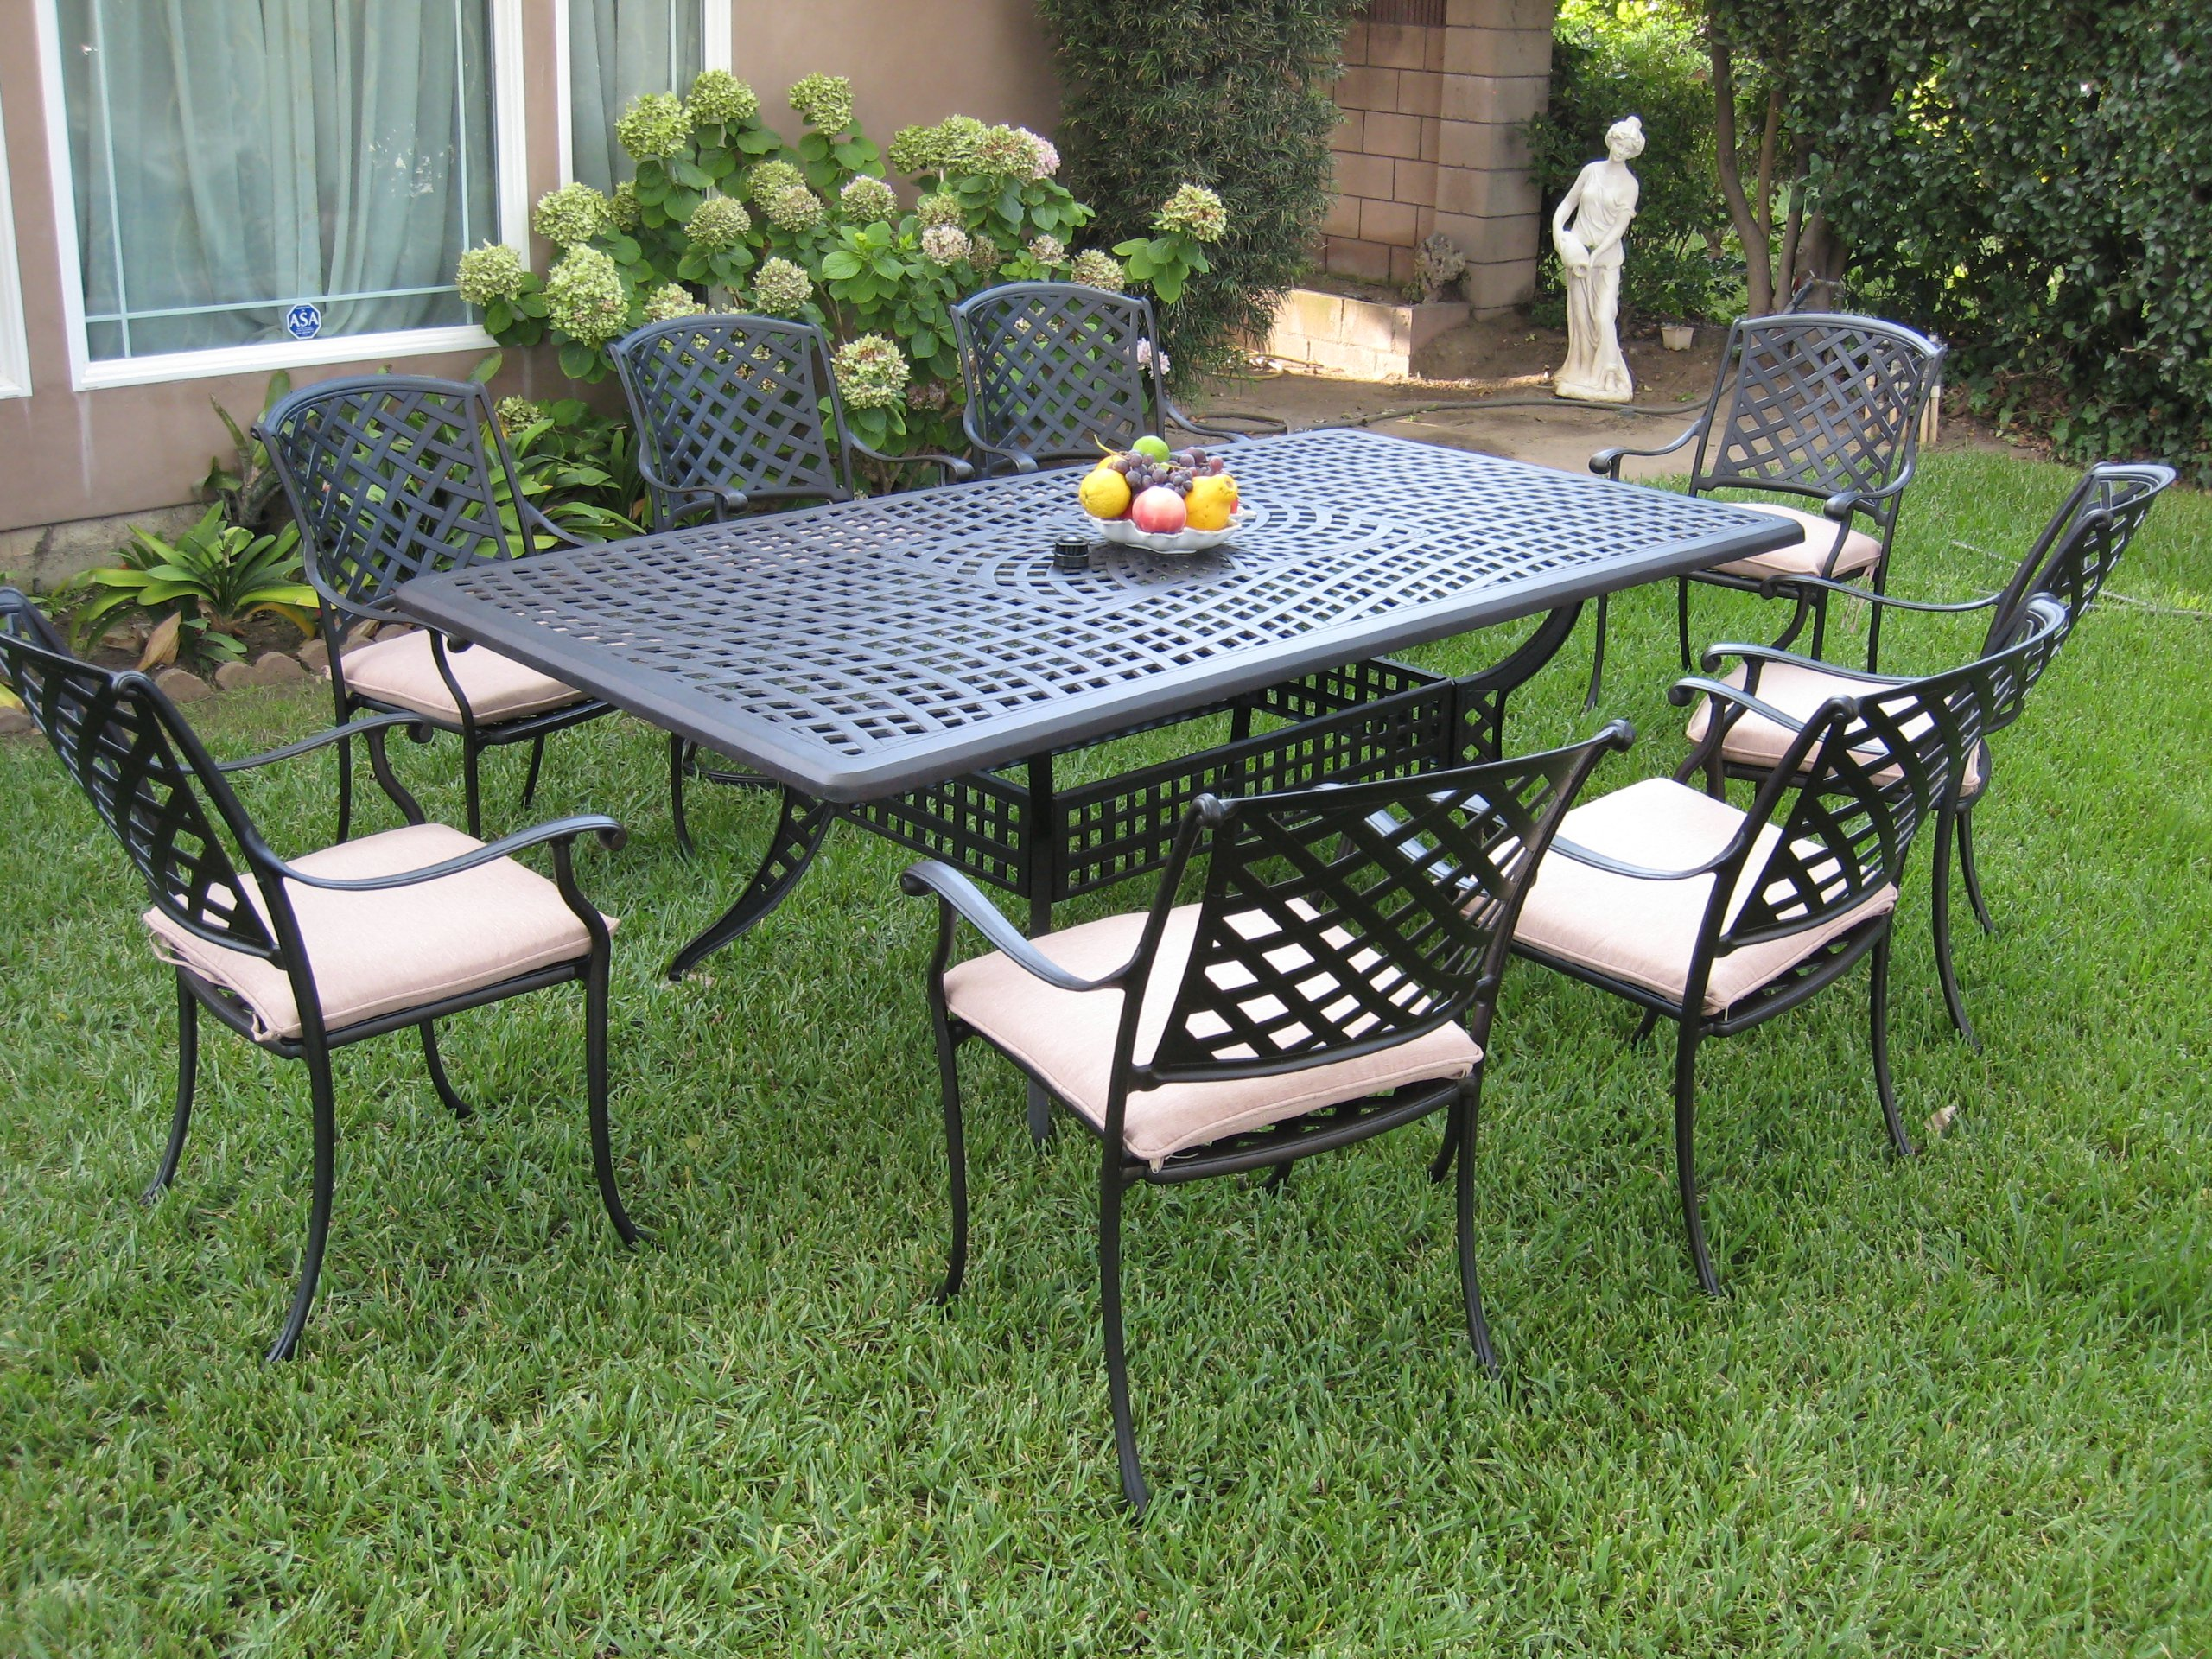 Outdoor Cast Aluminum Patio Furniture 9 Piece Dining Set ML8444RT CBM1290 - Made of genuine cast aluminum,Comfortable seating Durable and quality. Assembly required. Color: Desert Brown Slate Finish. Includes: 8 Armchairs and with free Cushions 1 Large table Chairs dimensions: 36.2H x 17.7 Seat Deep x 24.4 - patio-furniture, dining-sets-patio-funiture, patio - A1nrwHeETDL -